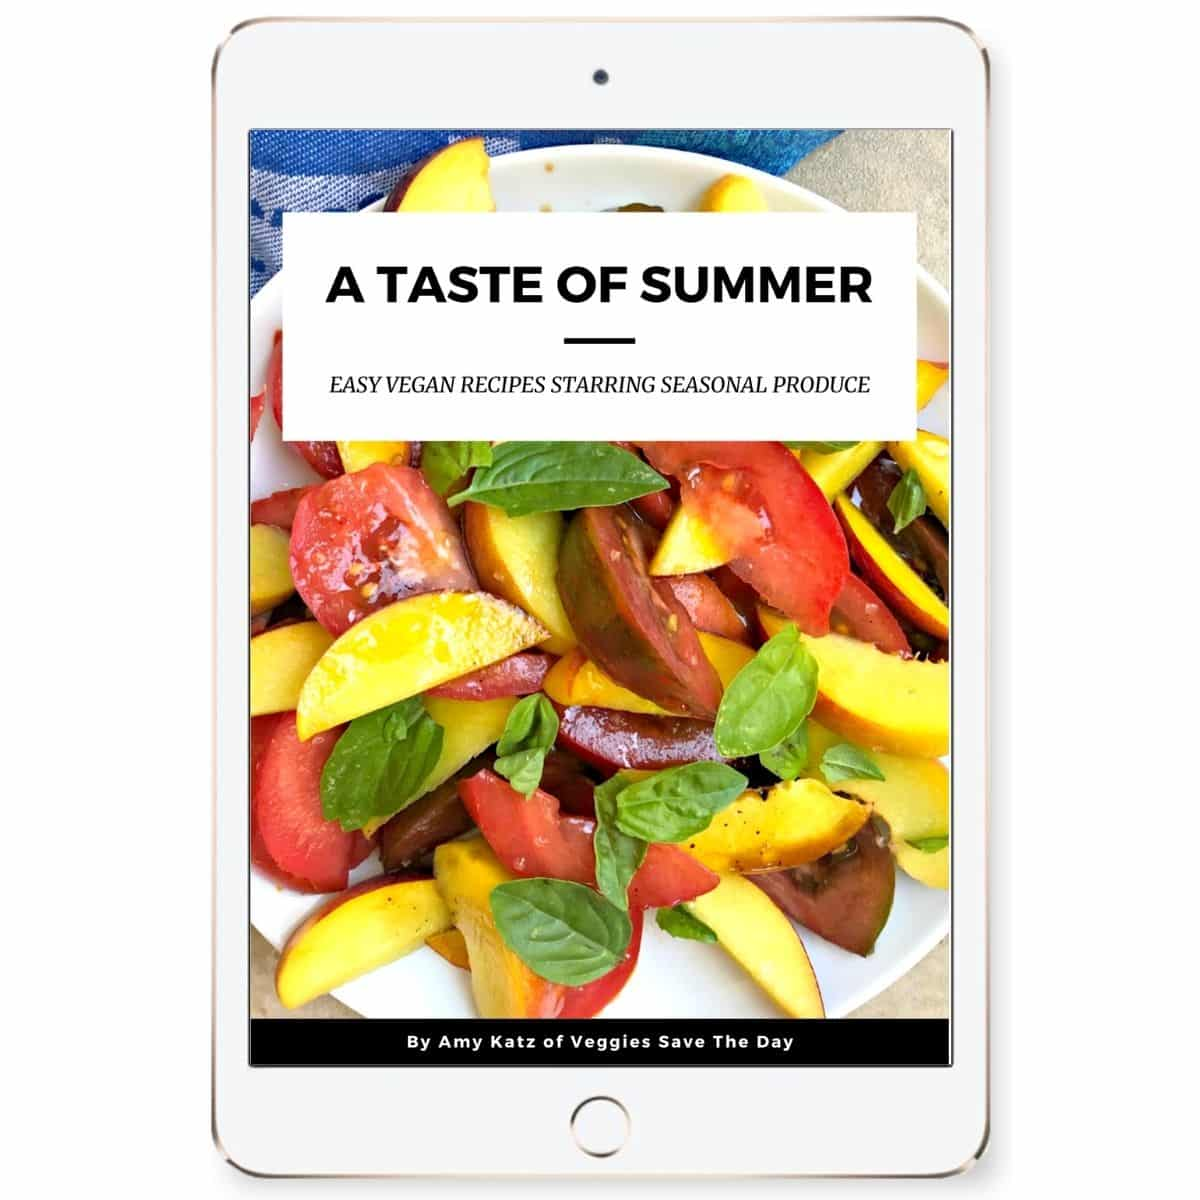 Cover of A Taste Of Summer shown on an iPad